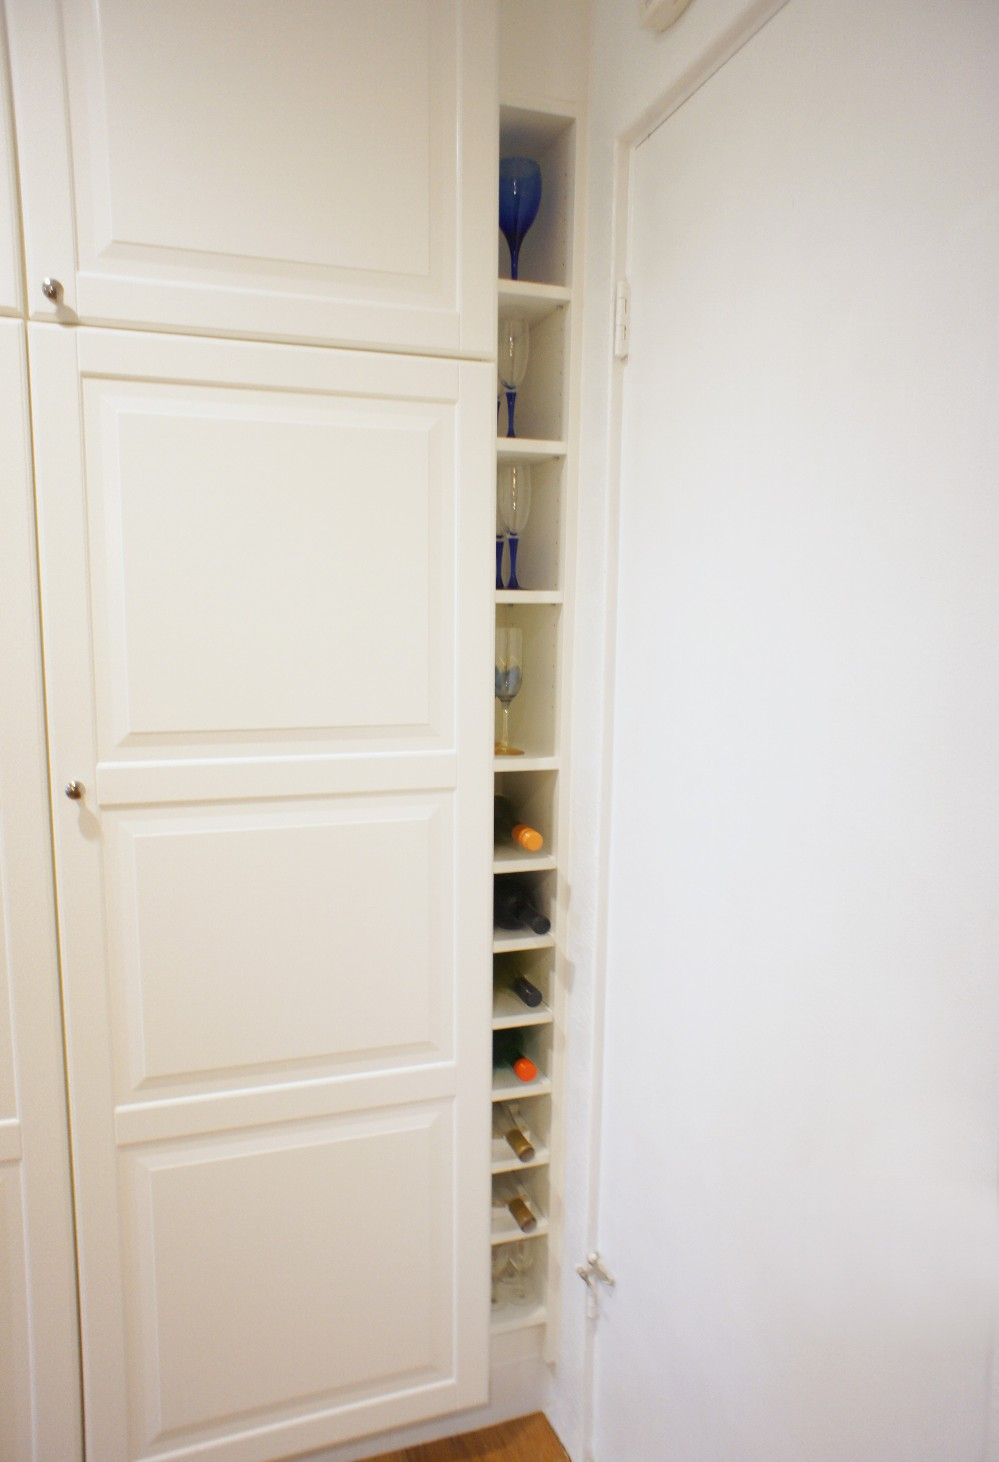 Ikea Kitchen Shelf Insert